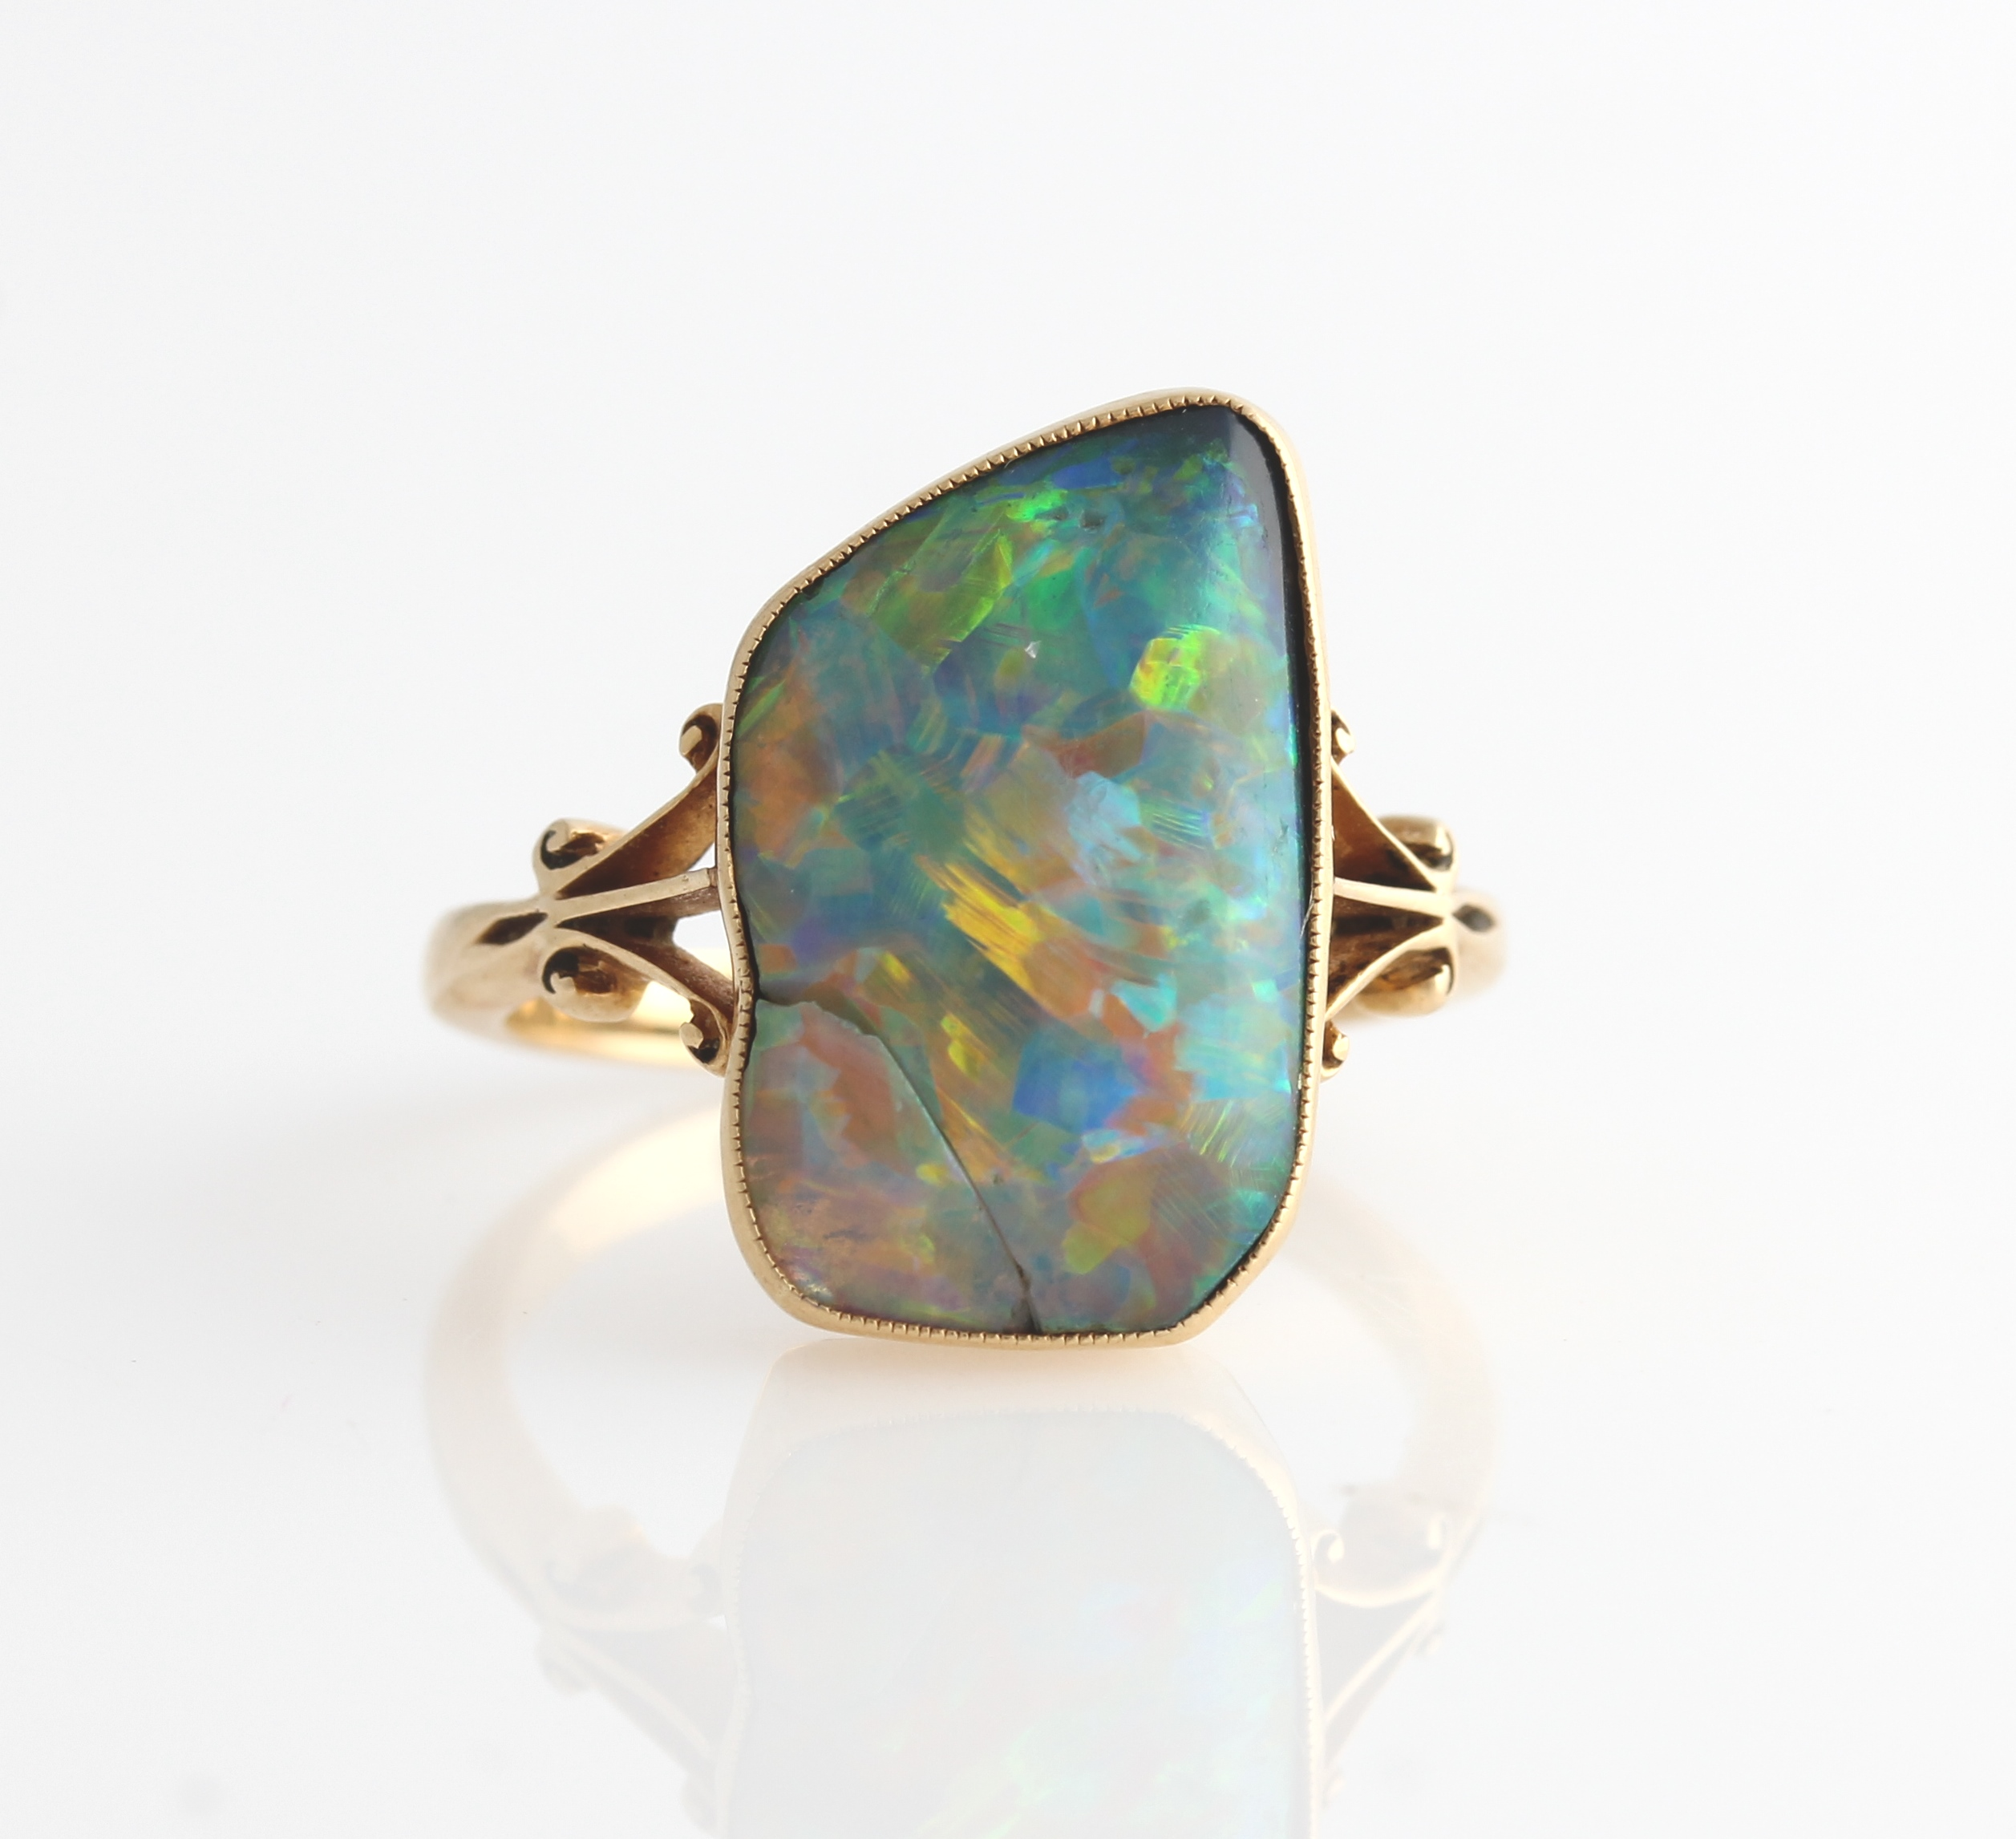 Lot 7 - An 18ct yellow old opal ring set with an irregular piece of opal, measures approx. 10x17mm, with